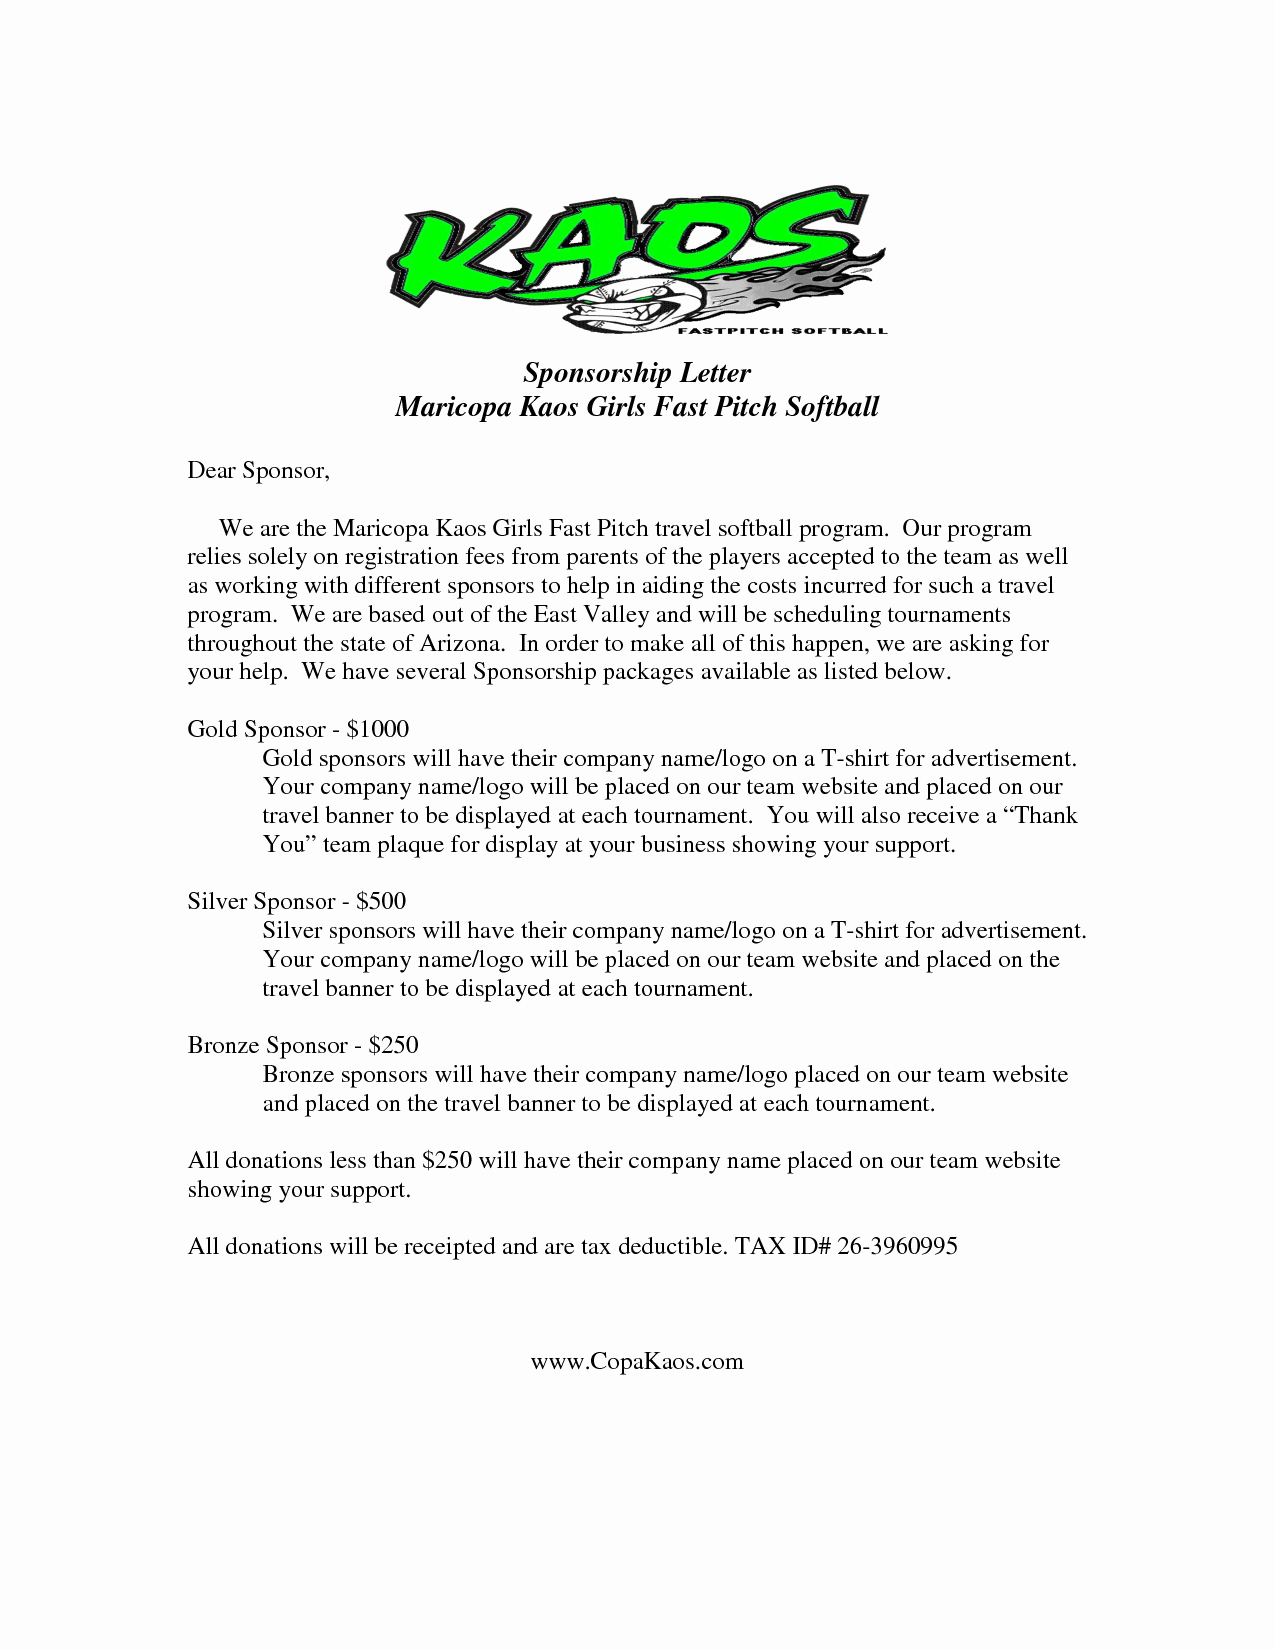 Request for Donations Letter Fresh Donation Letter Template for Sports Sample